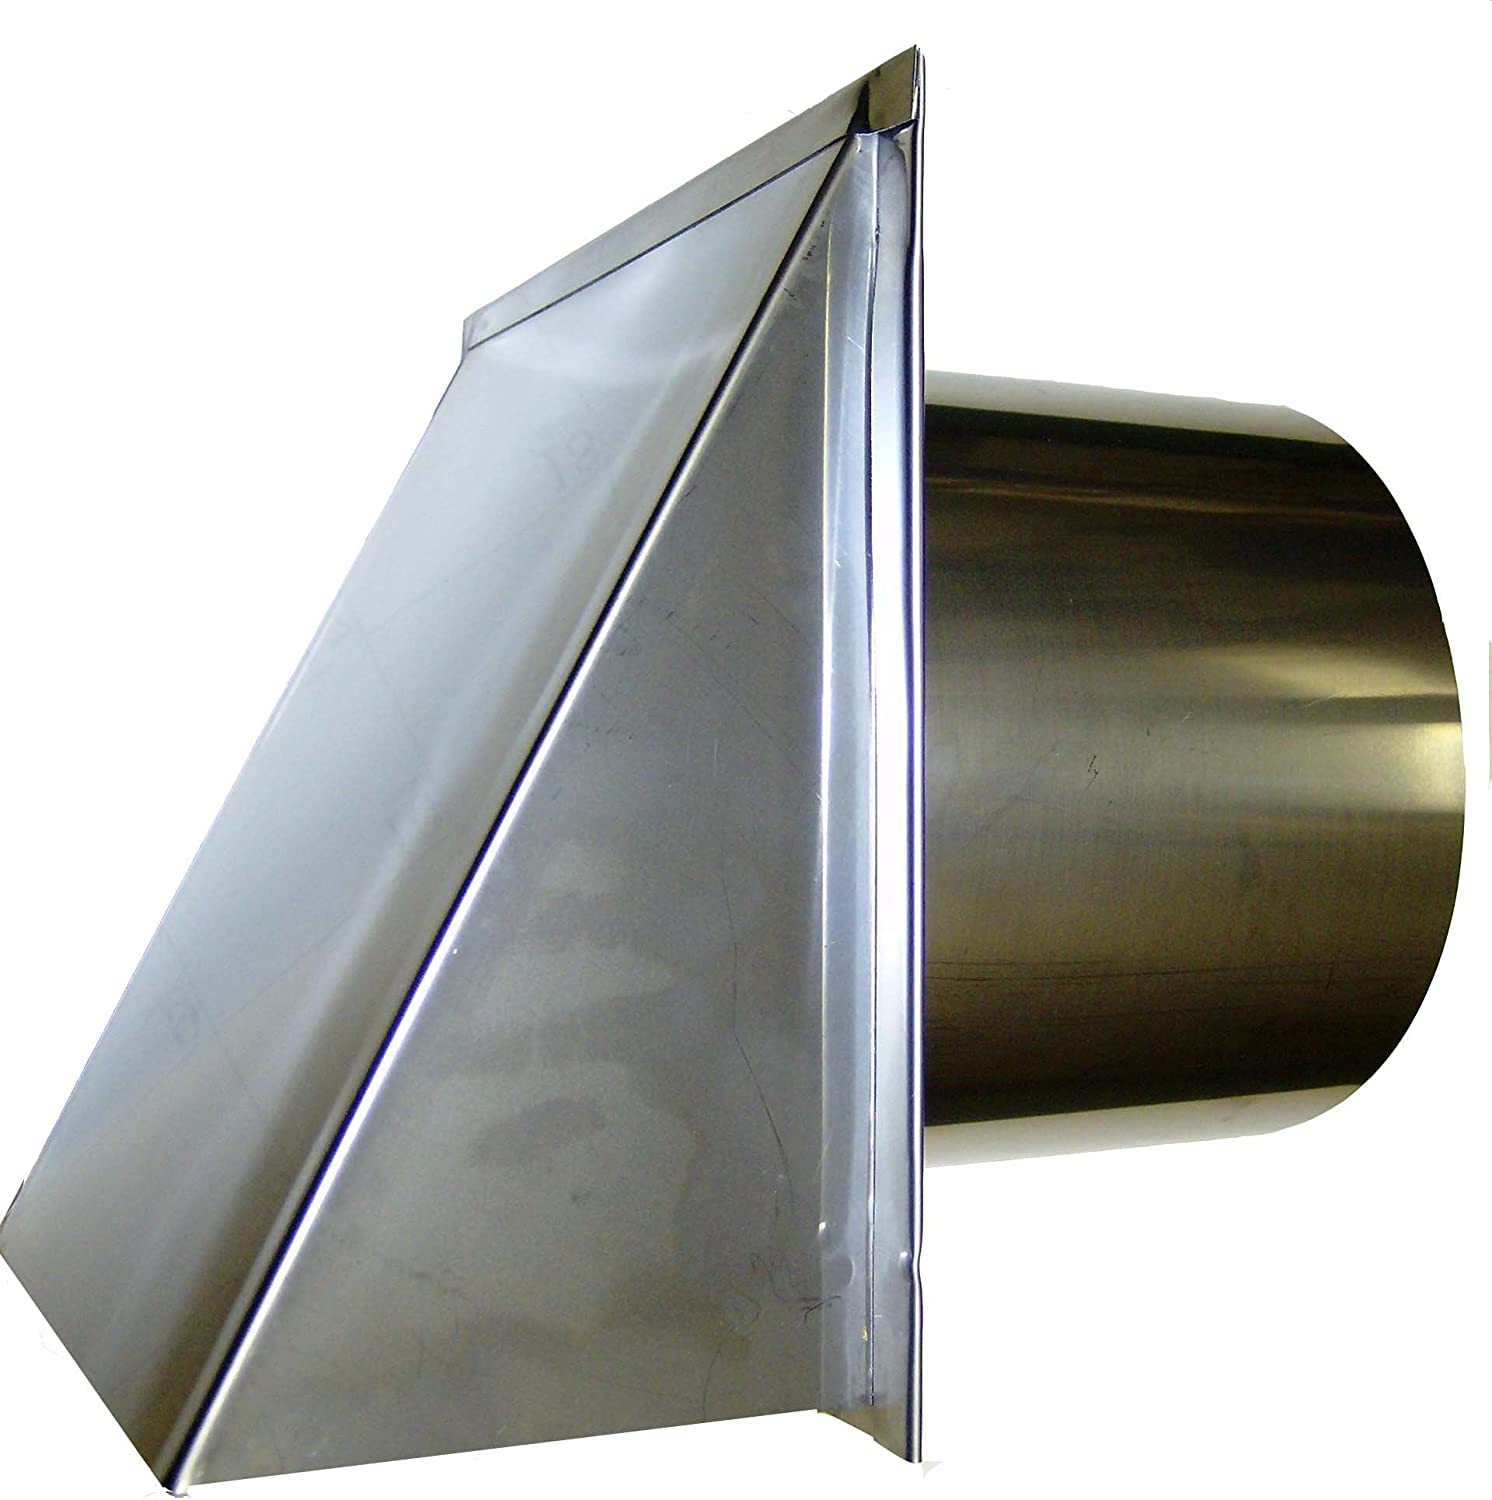 8 Inch Stainless Steel Exterior Side Damper with Sc Popular shop is the lowest price Ranking TOP9 challenge Cap and Wall